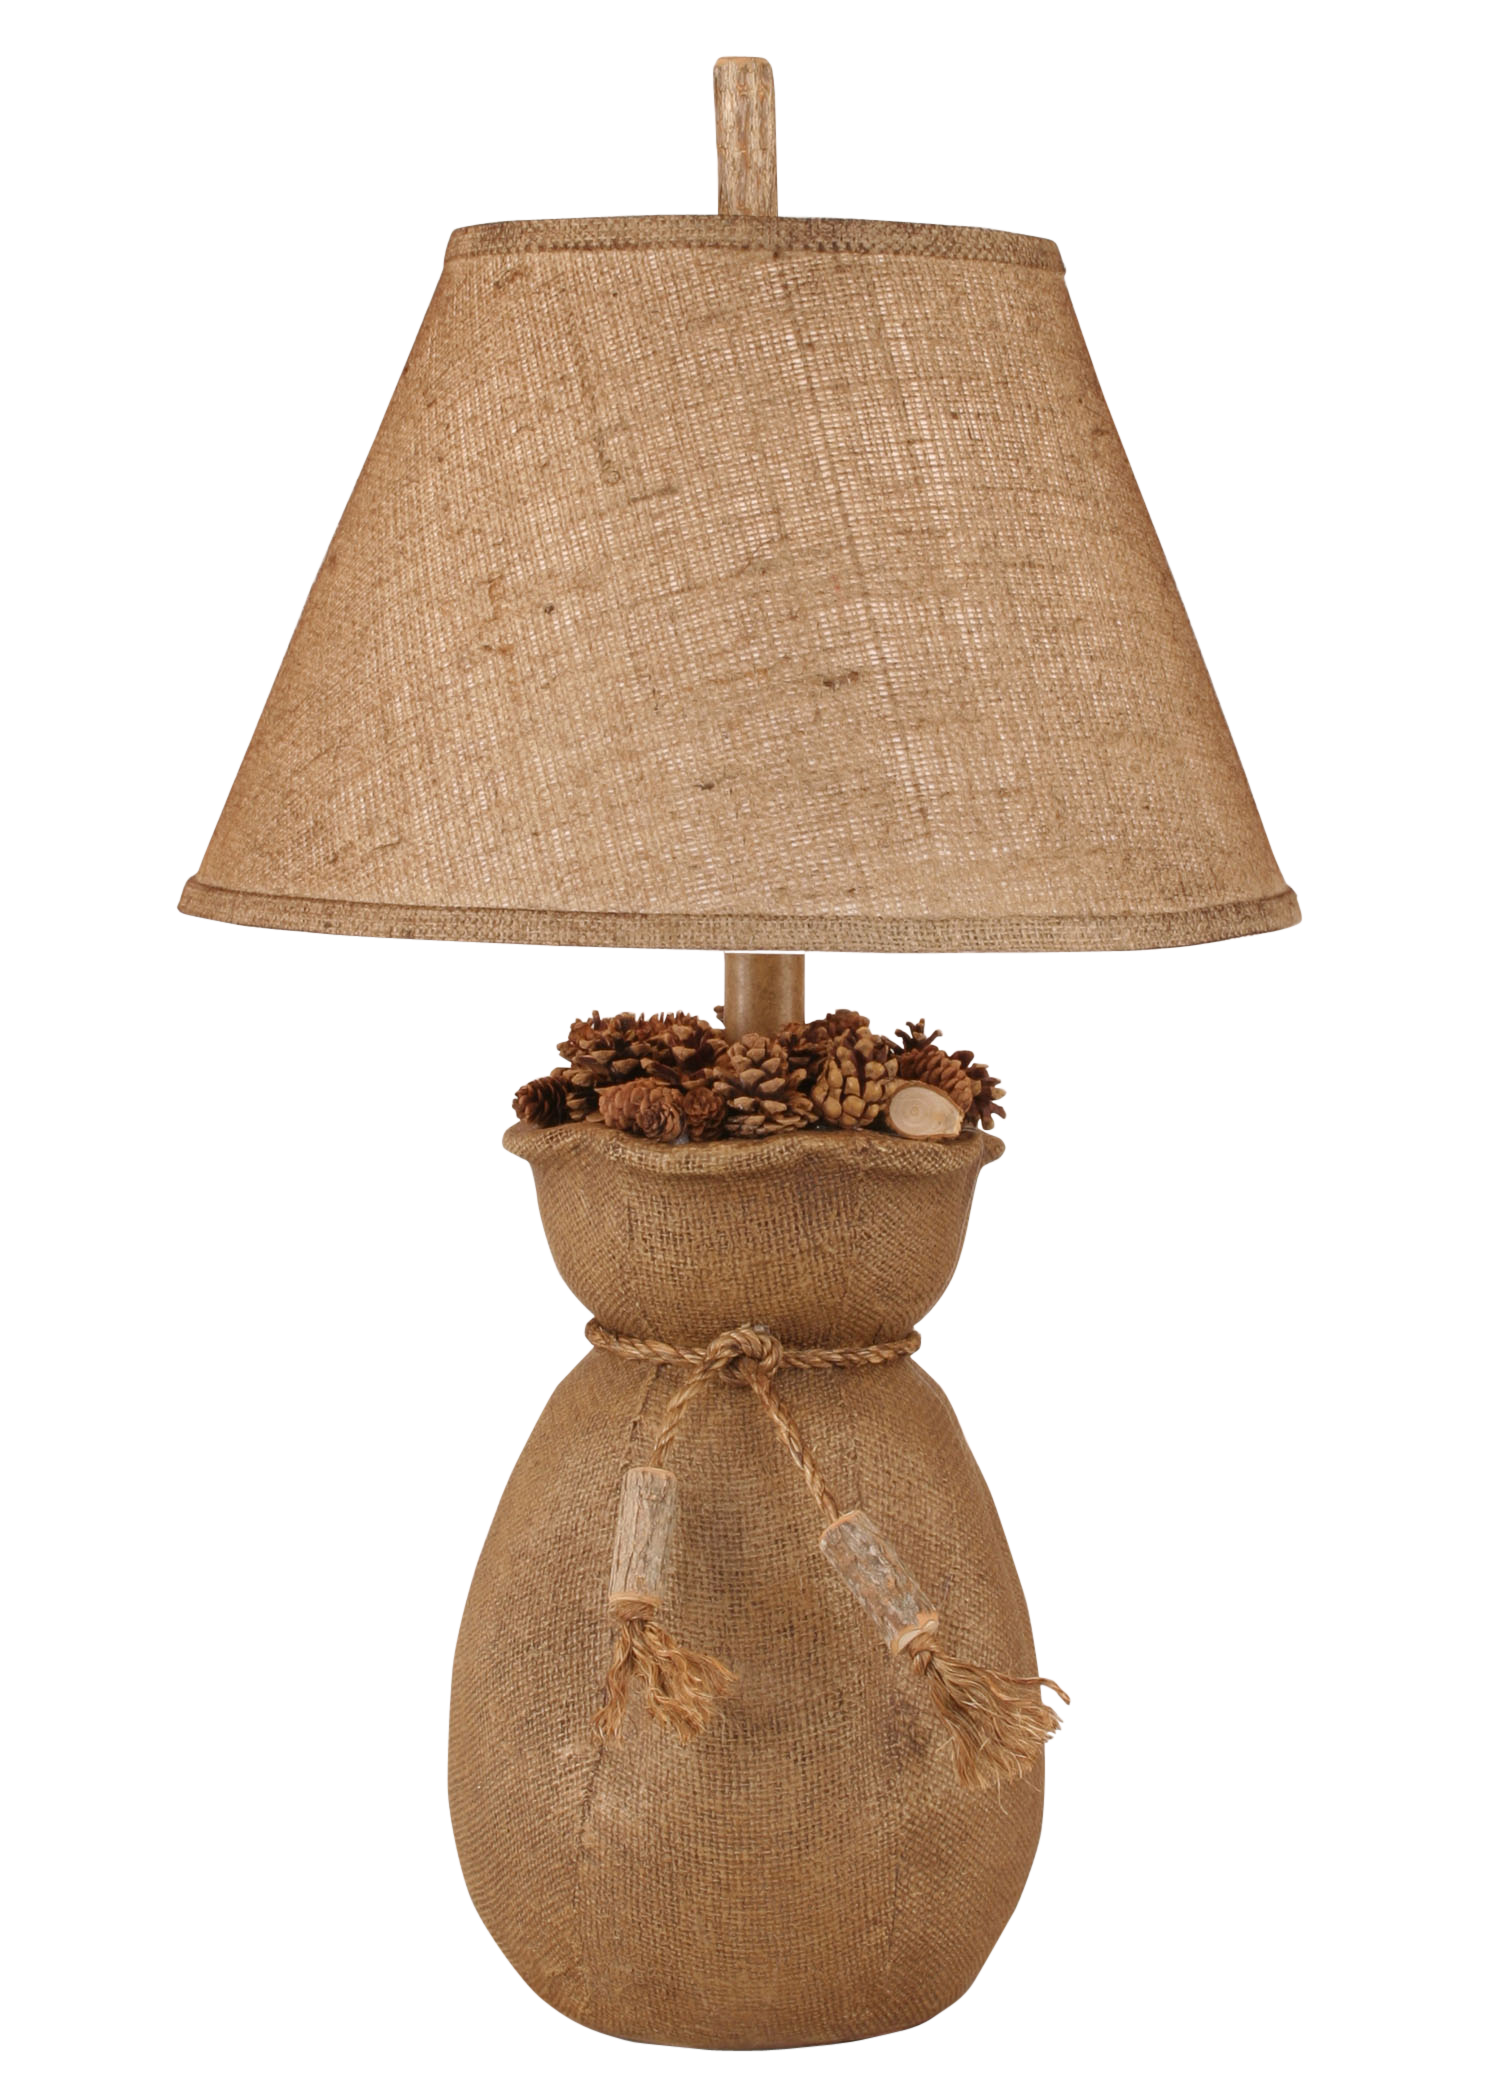 Burlap Bag of Pine Cones Table Lamp - Coast Lamp Shop